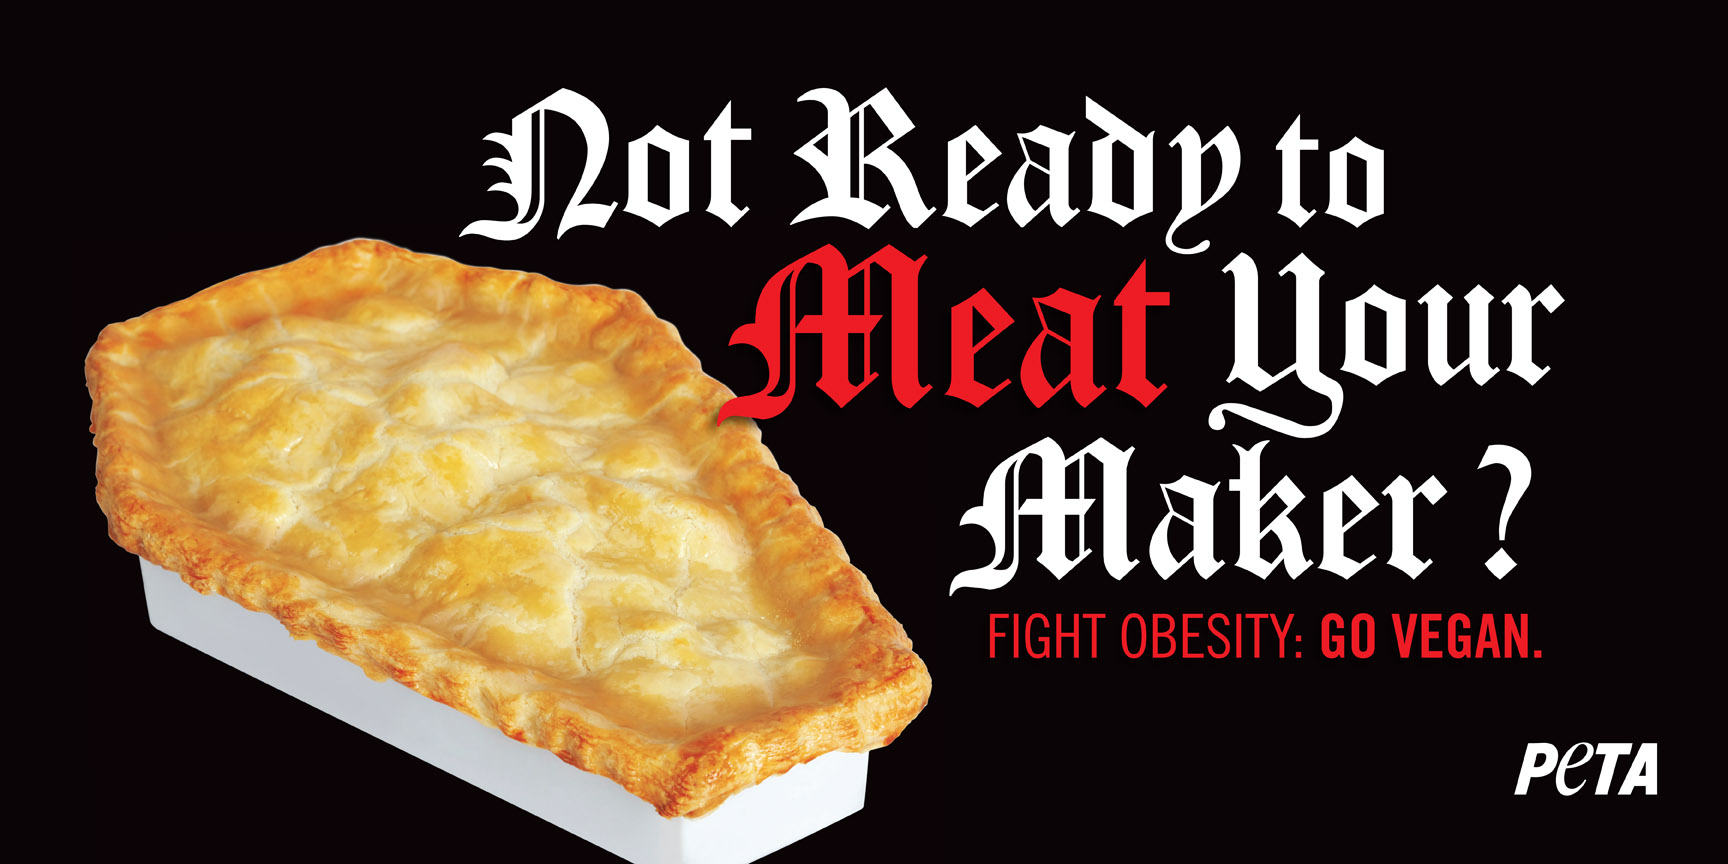 """Not Ready to Meat Your Maker? Fight Obesity: GO VEGAN. PETA."" Image of a pot pie in the shape of a coffin; font used is gothic in white and blood red."